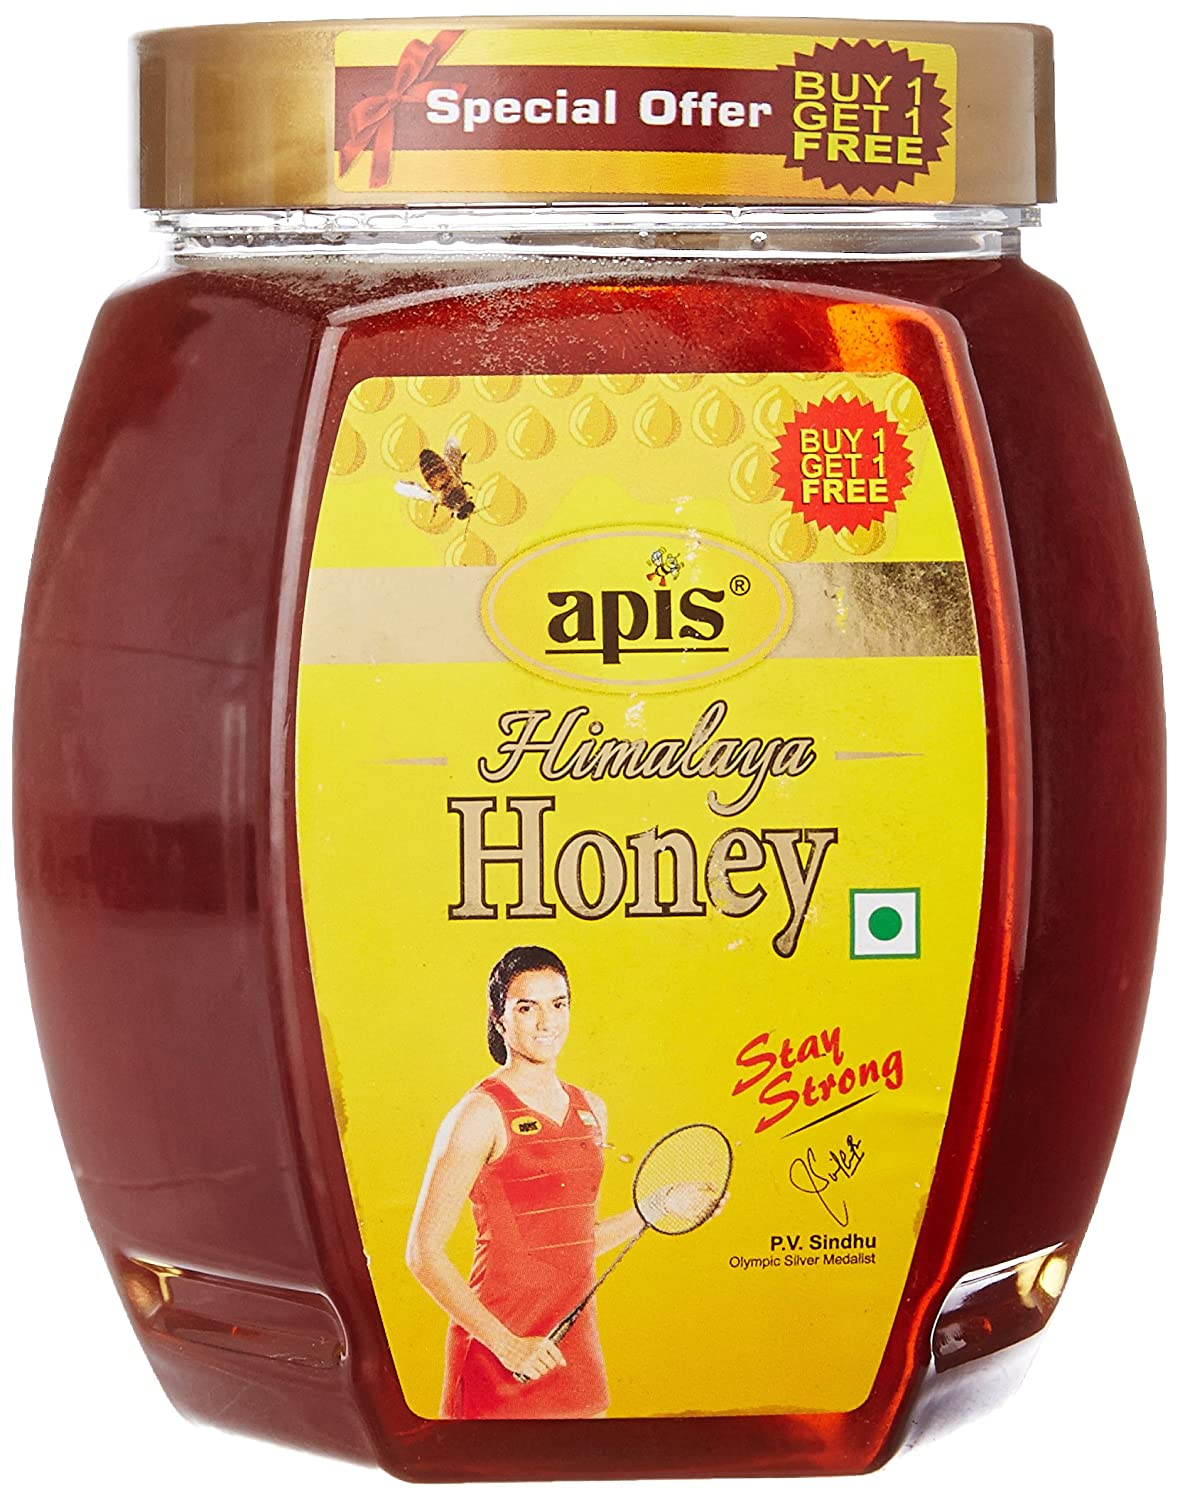 Apis Himalaya Honey, 1kg (Buy 1 Get 1 Free)